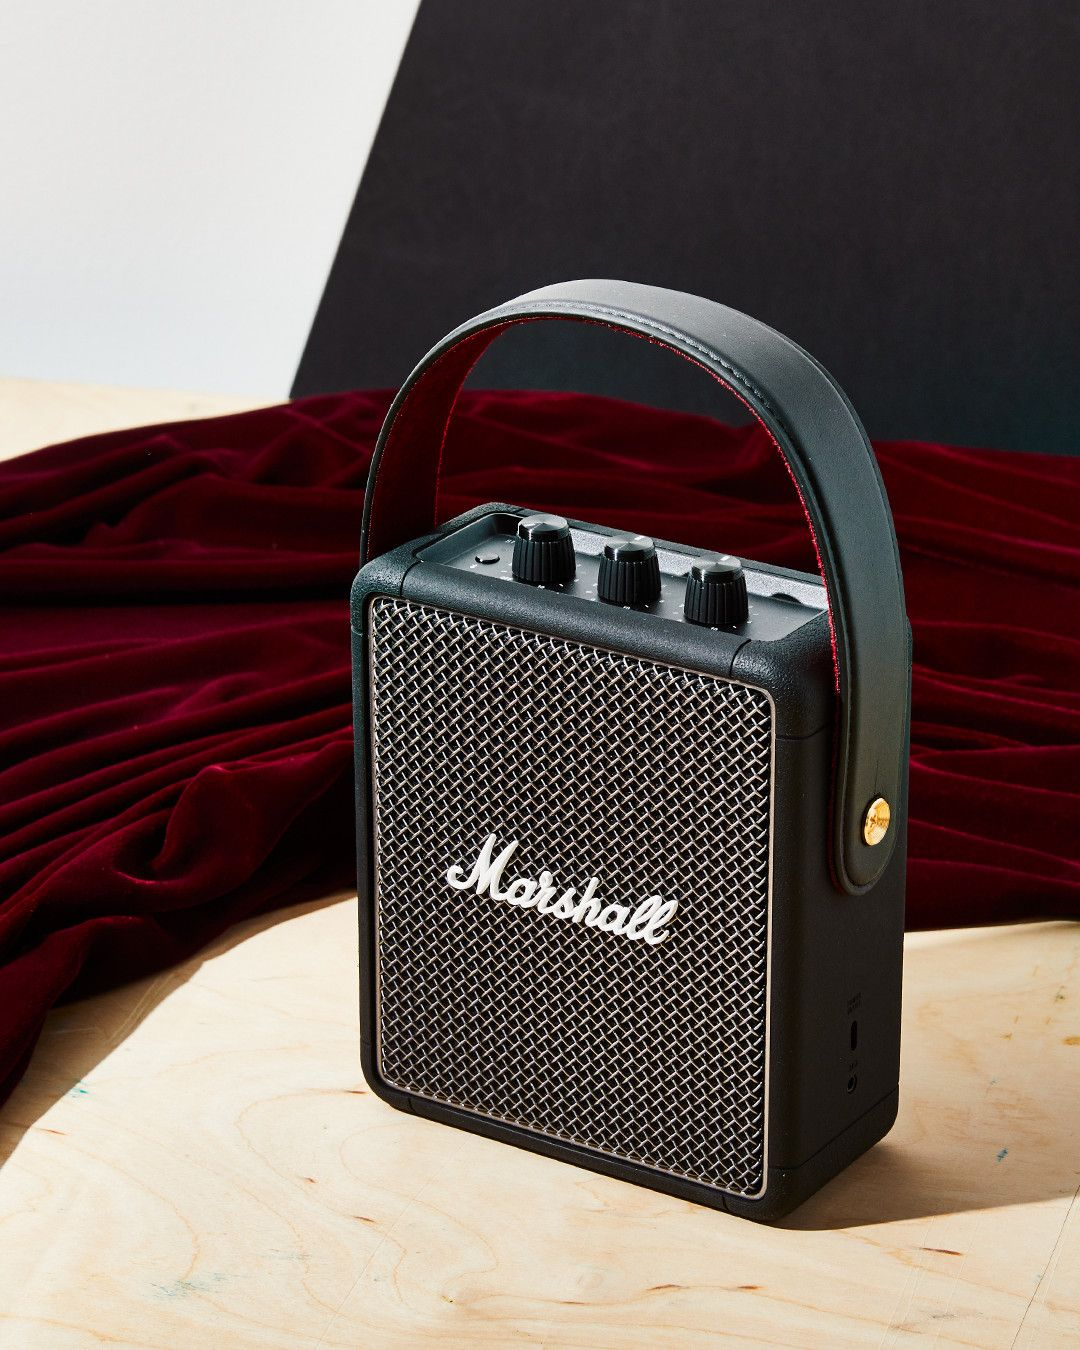 Marshall's Stockwell II Bluetooth Speaker Has Excellent Sound and Rockstar Vibes